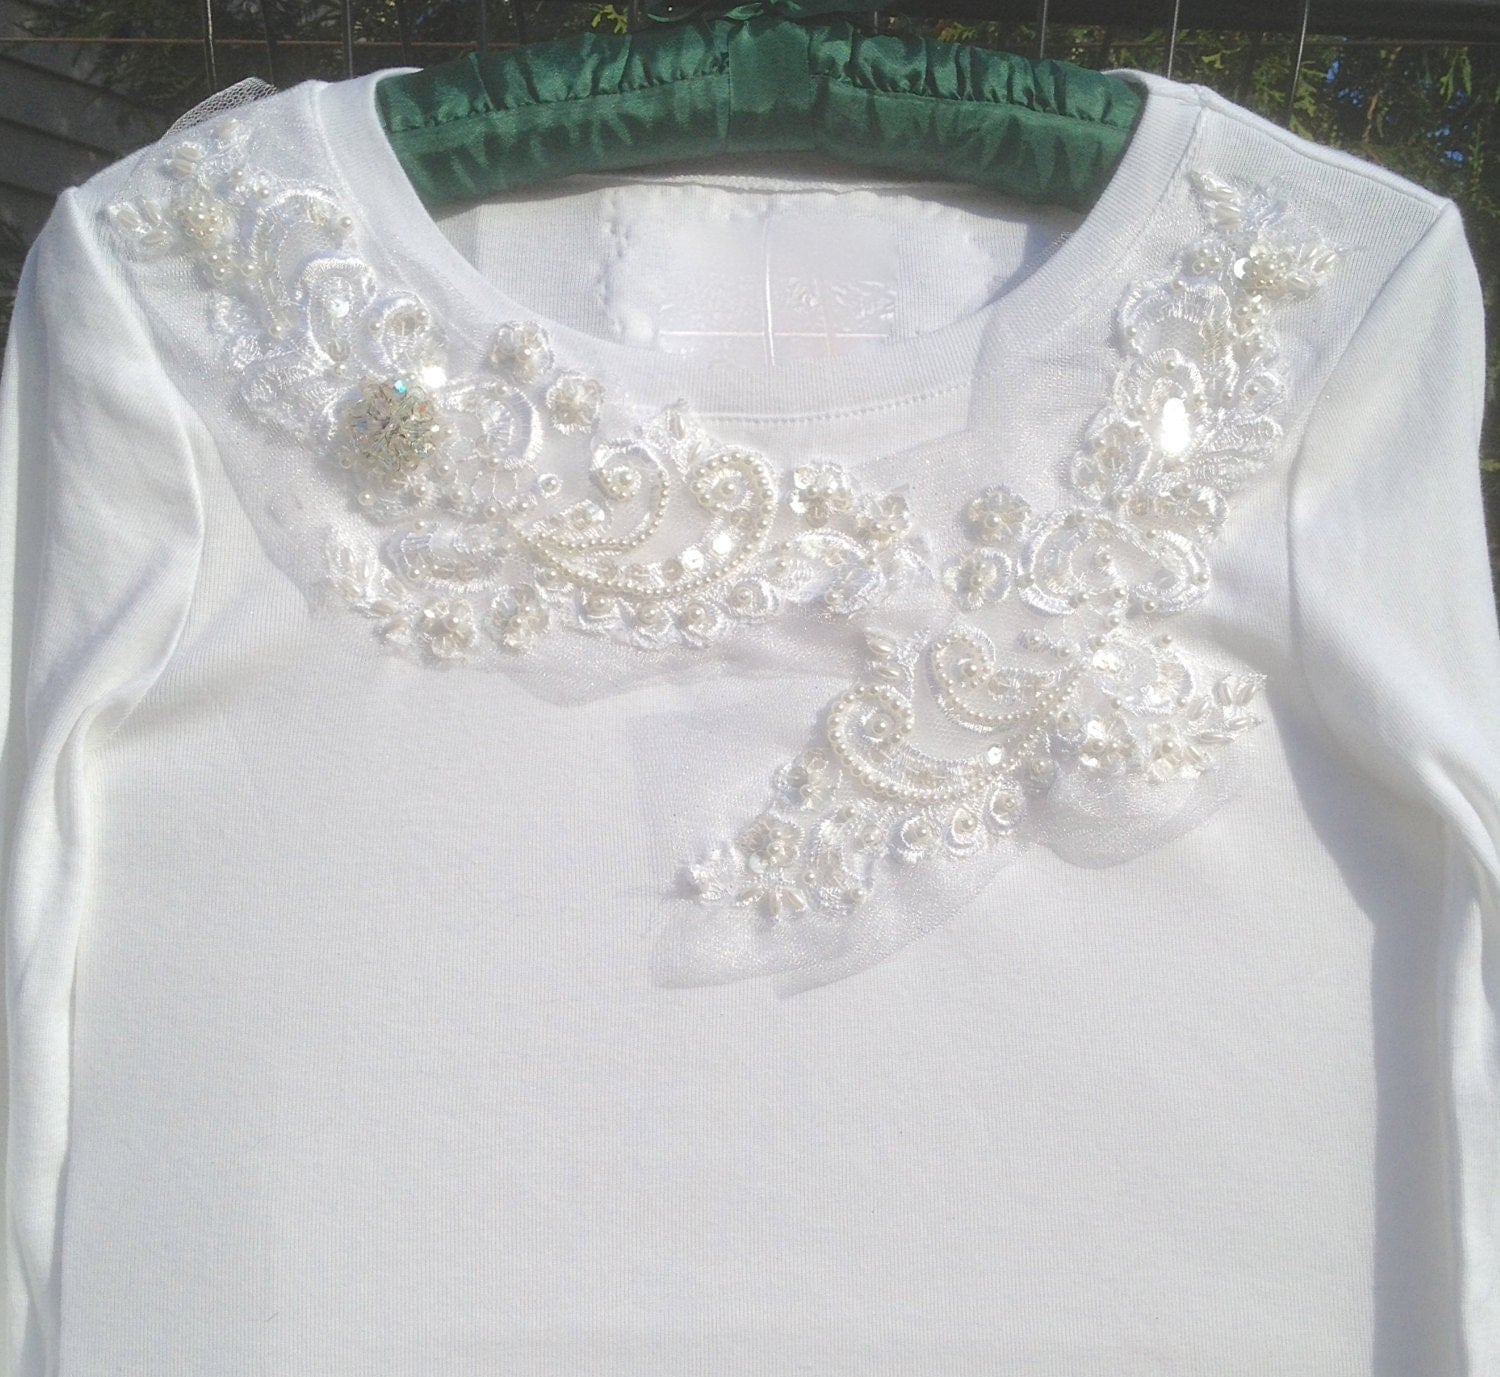 White Long Sleeve T Shirt With Bridal Lace Wedding T Shirt